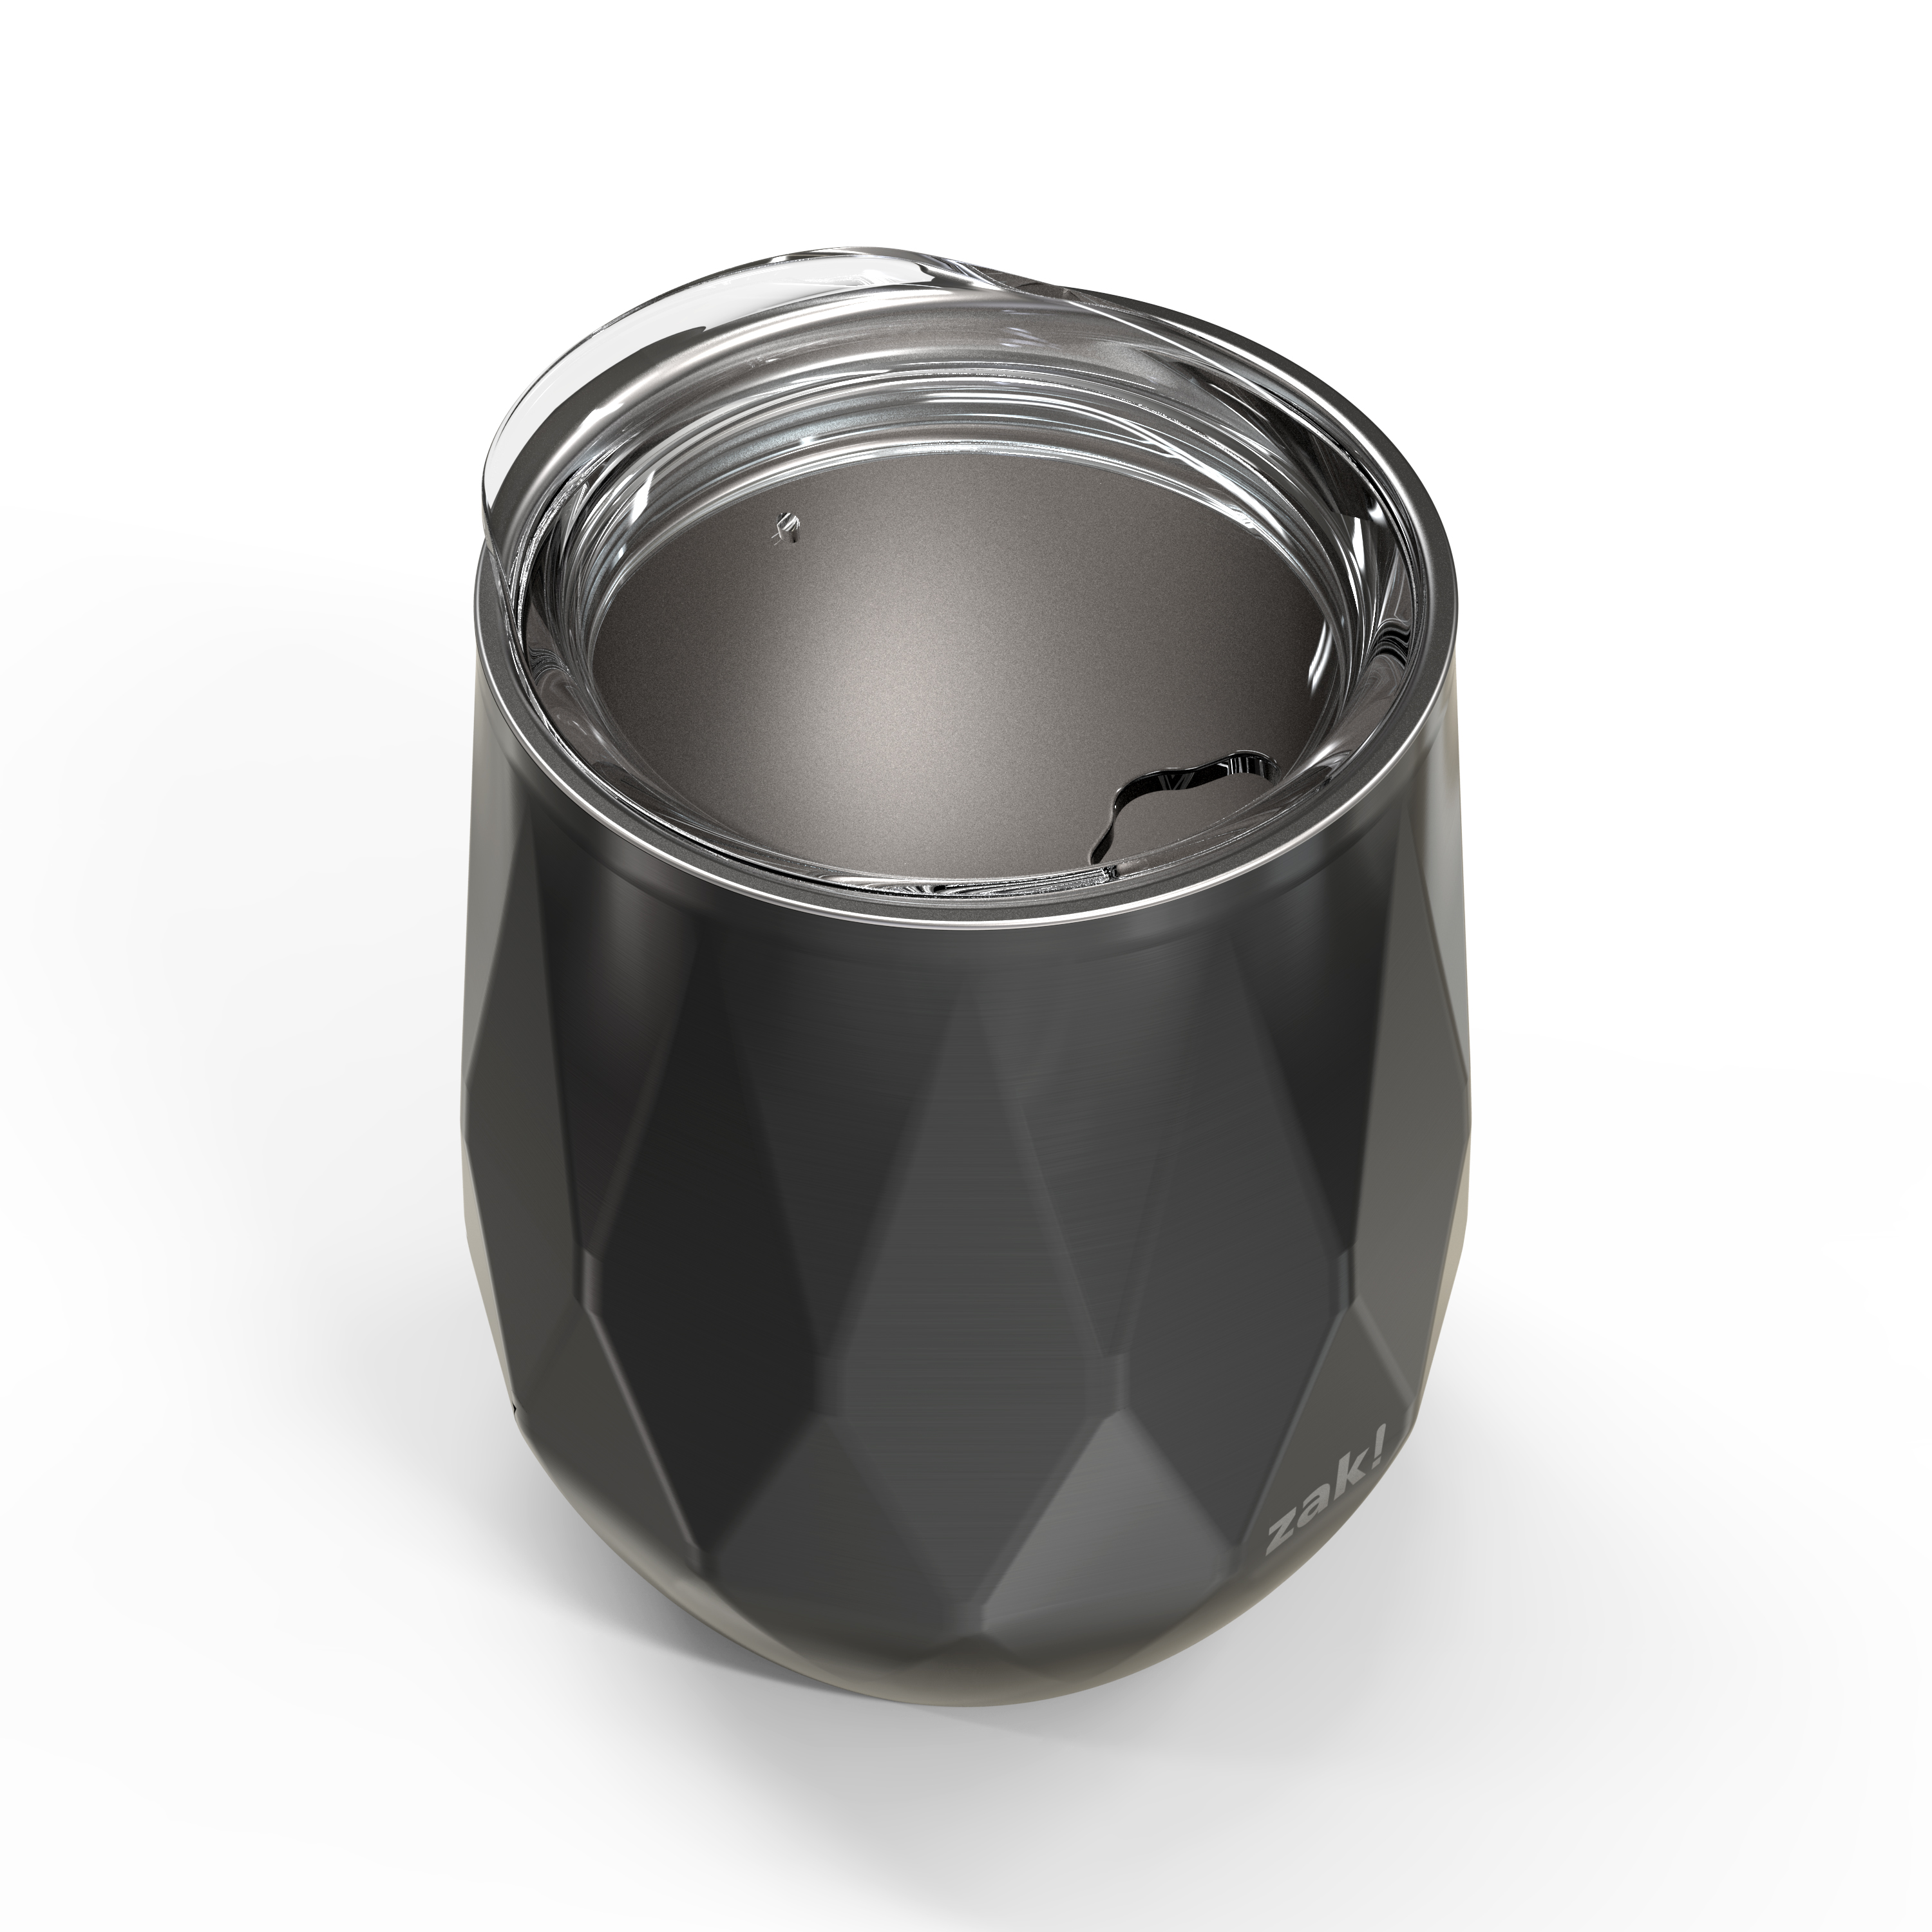 Fractal 11 ounce Vacuum Insulated Stainless Steel Tumbler, Black slideshow image 3